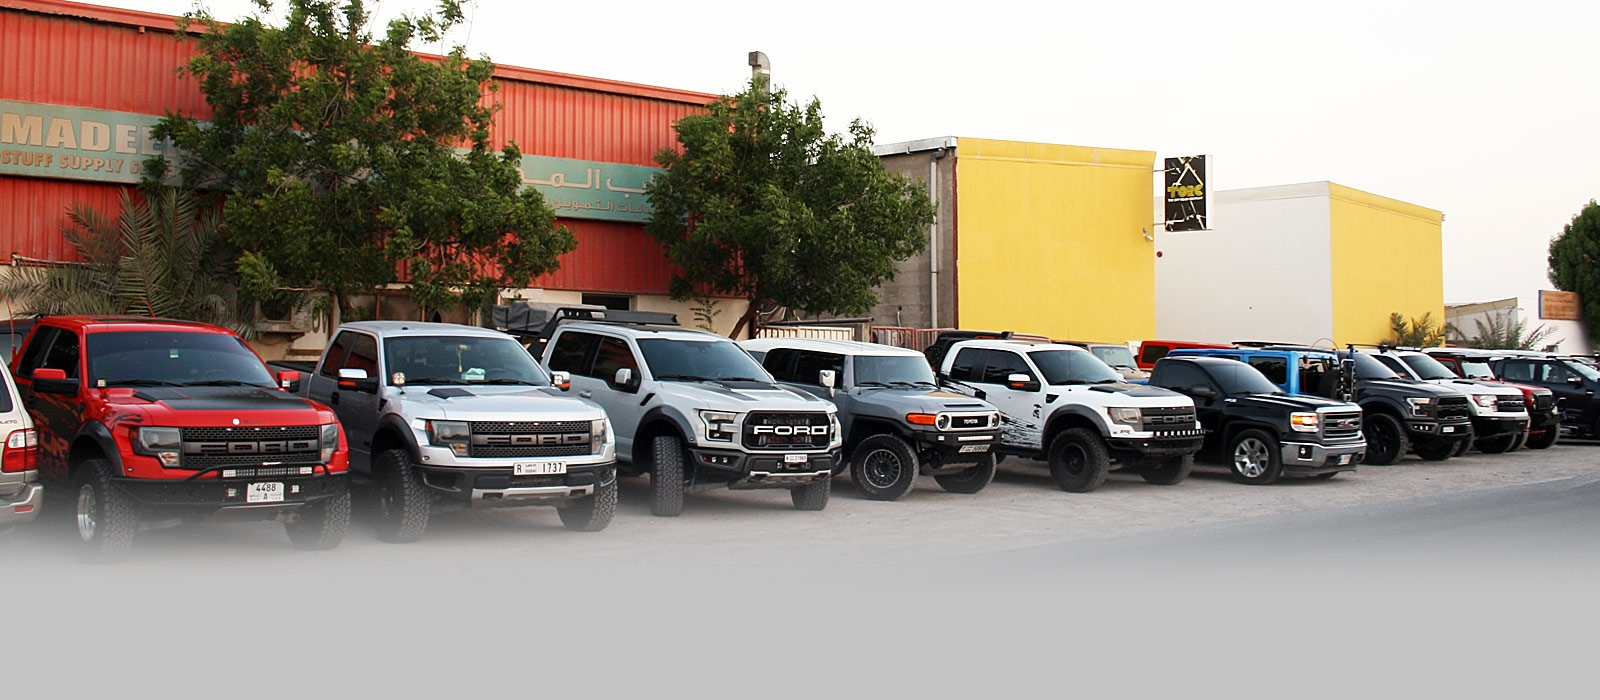 http://www.theoffroadcompany.com/cms/resources/contentfiles/pageBanners/Header-Banner-Showroom-Outside.jpg